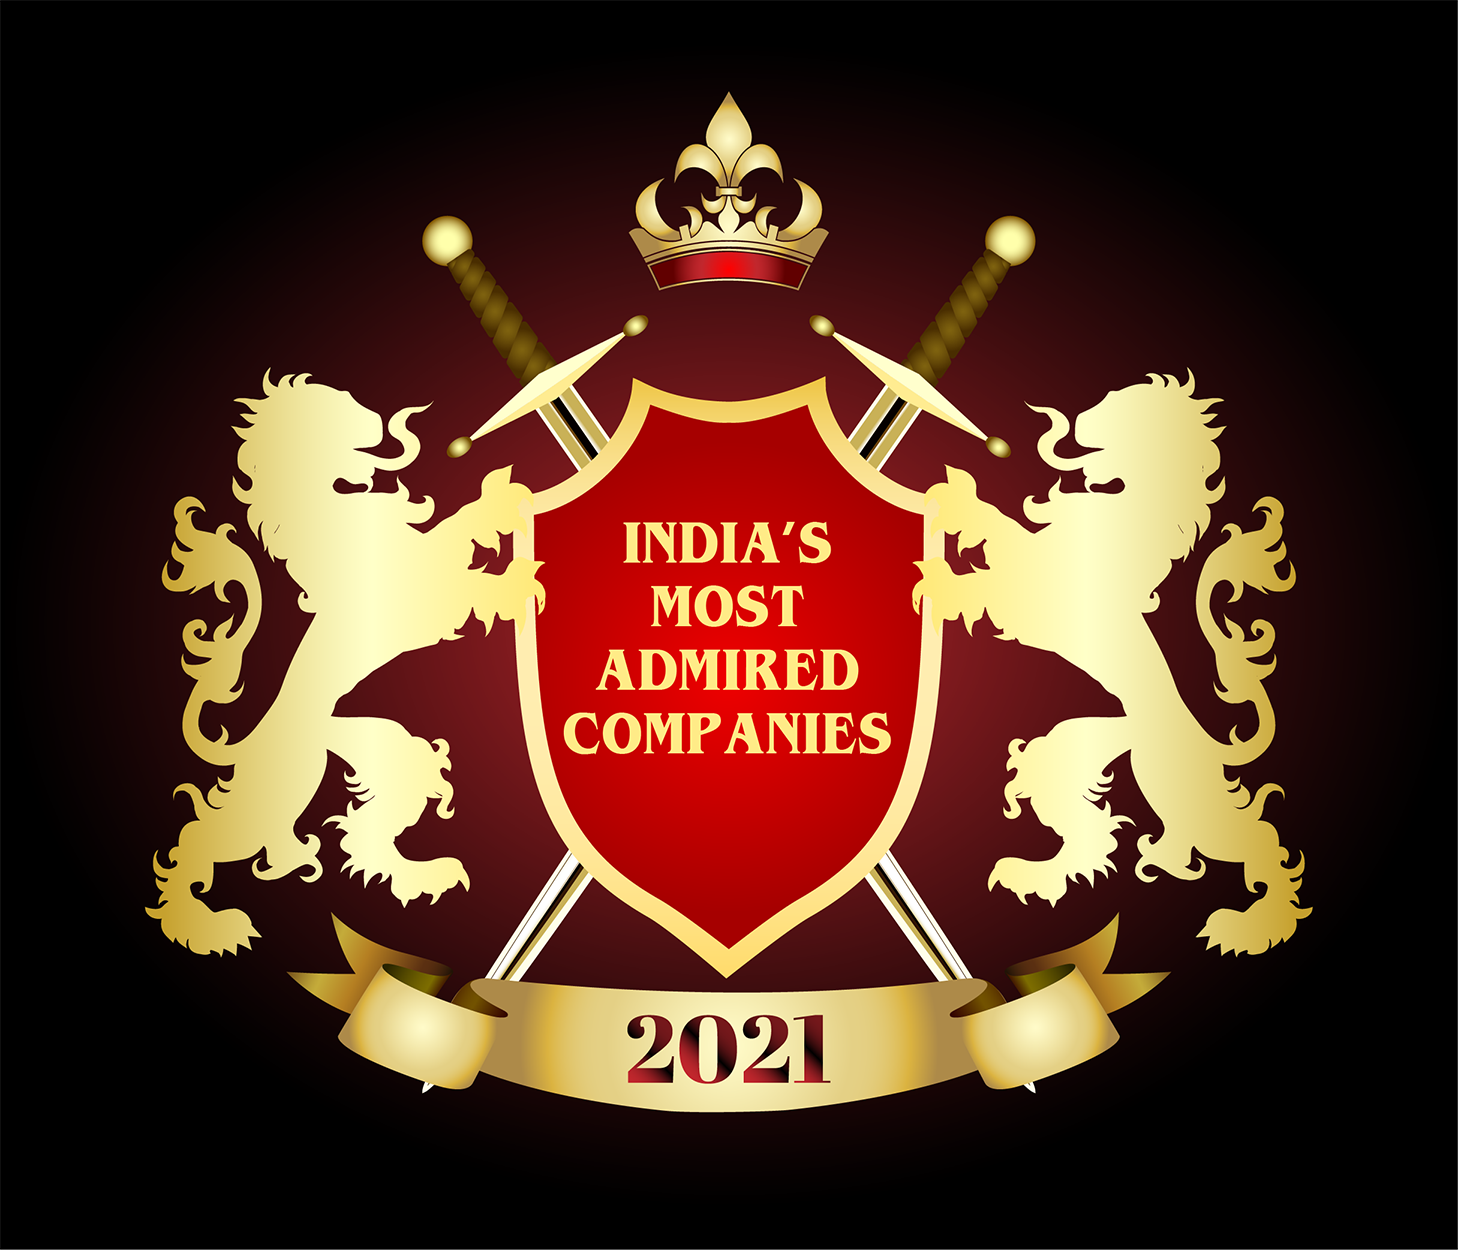 India's Most Admired Companies Awards 2021 | An Online Reward & Recognition Initiative